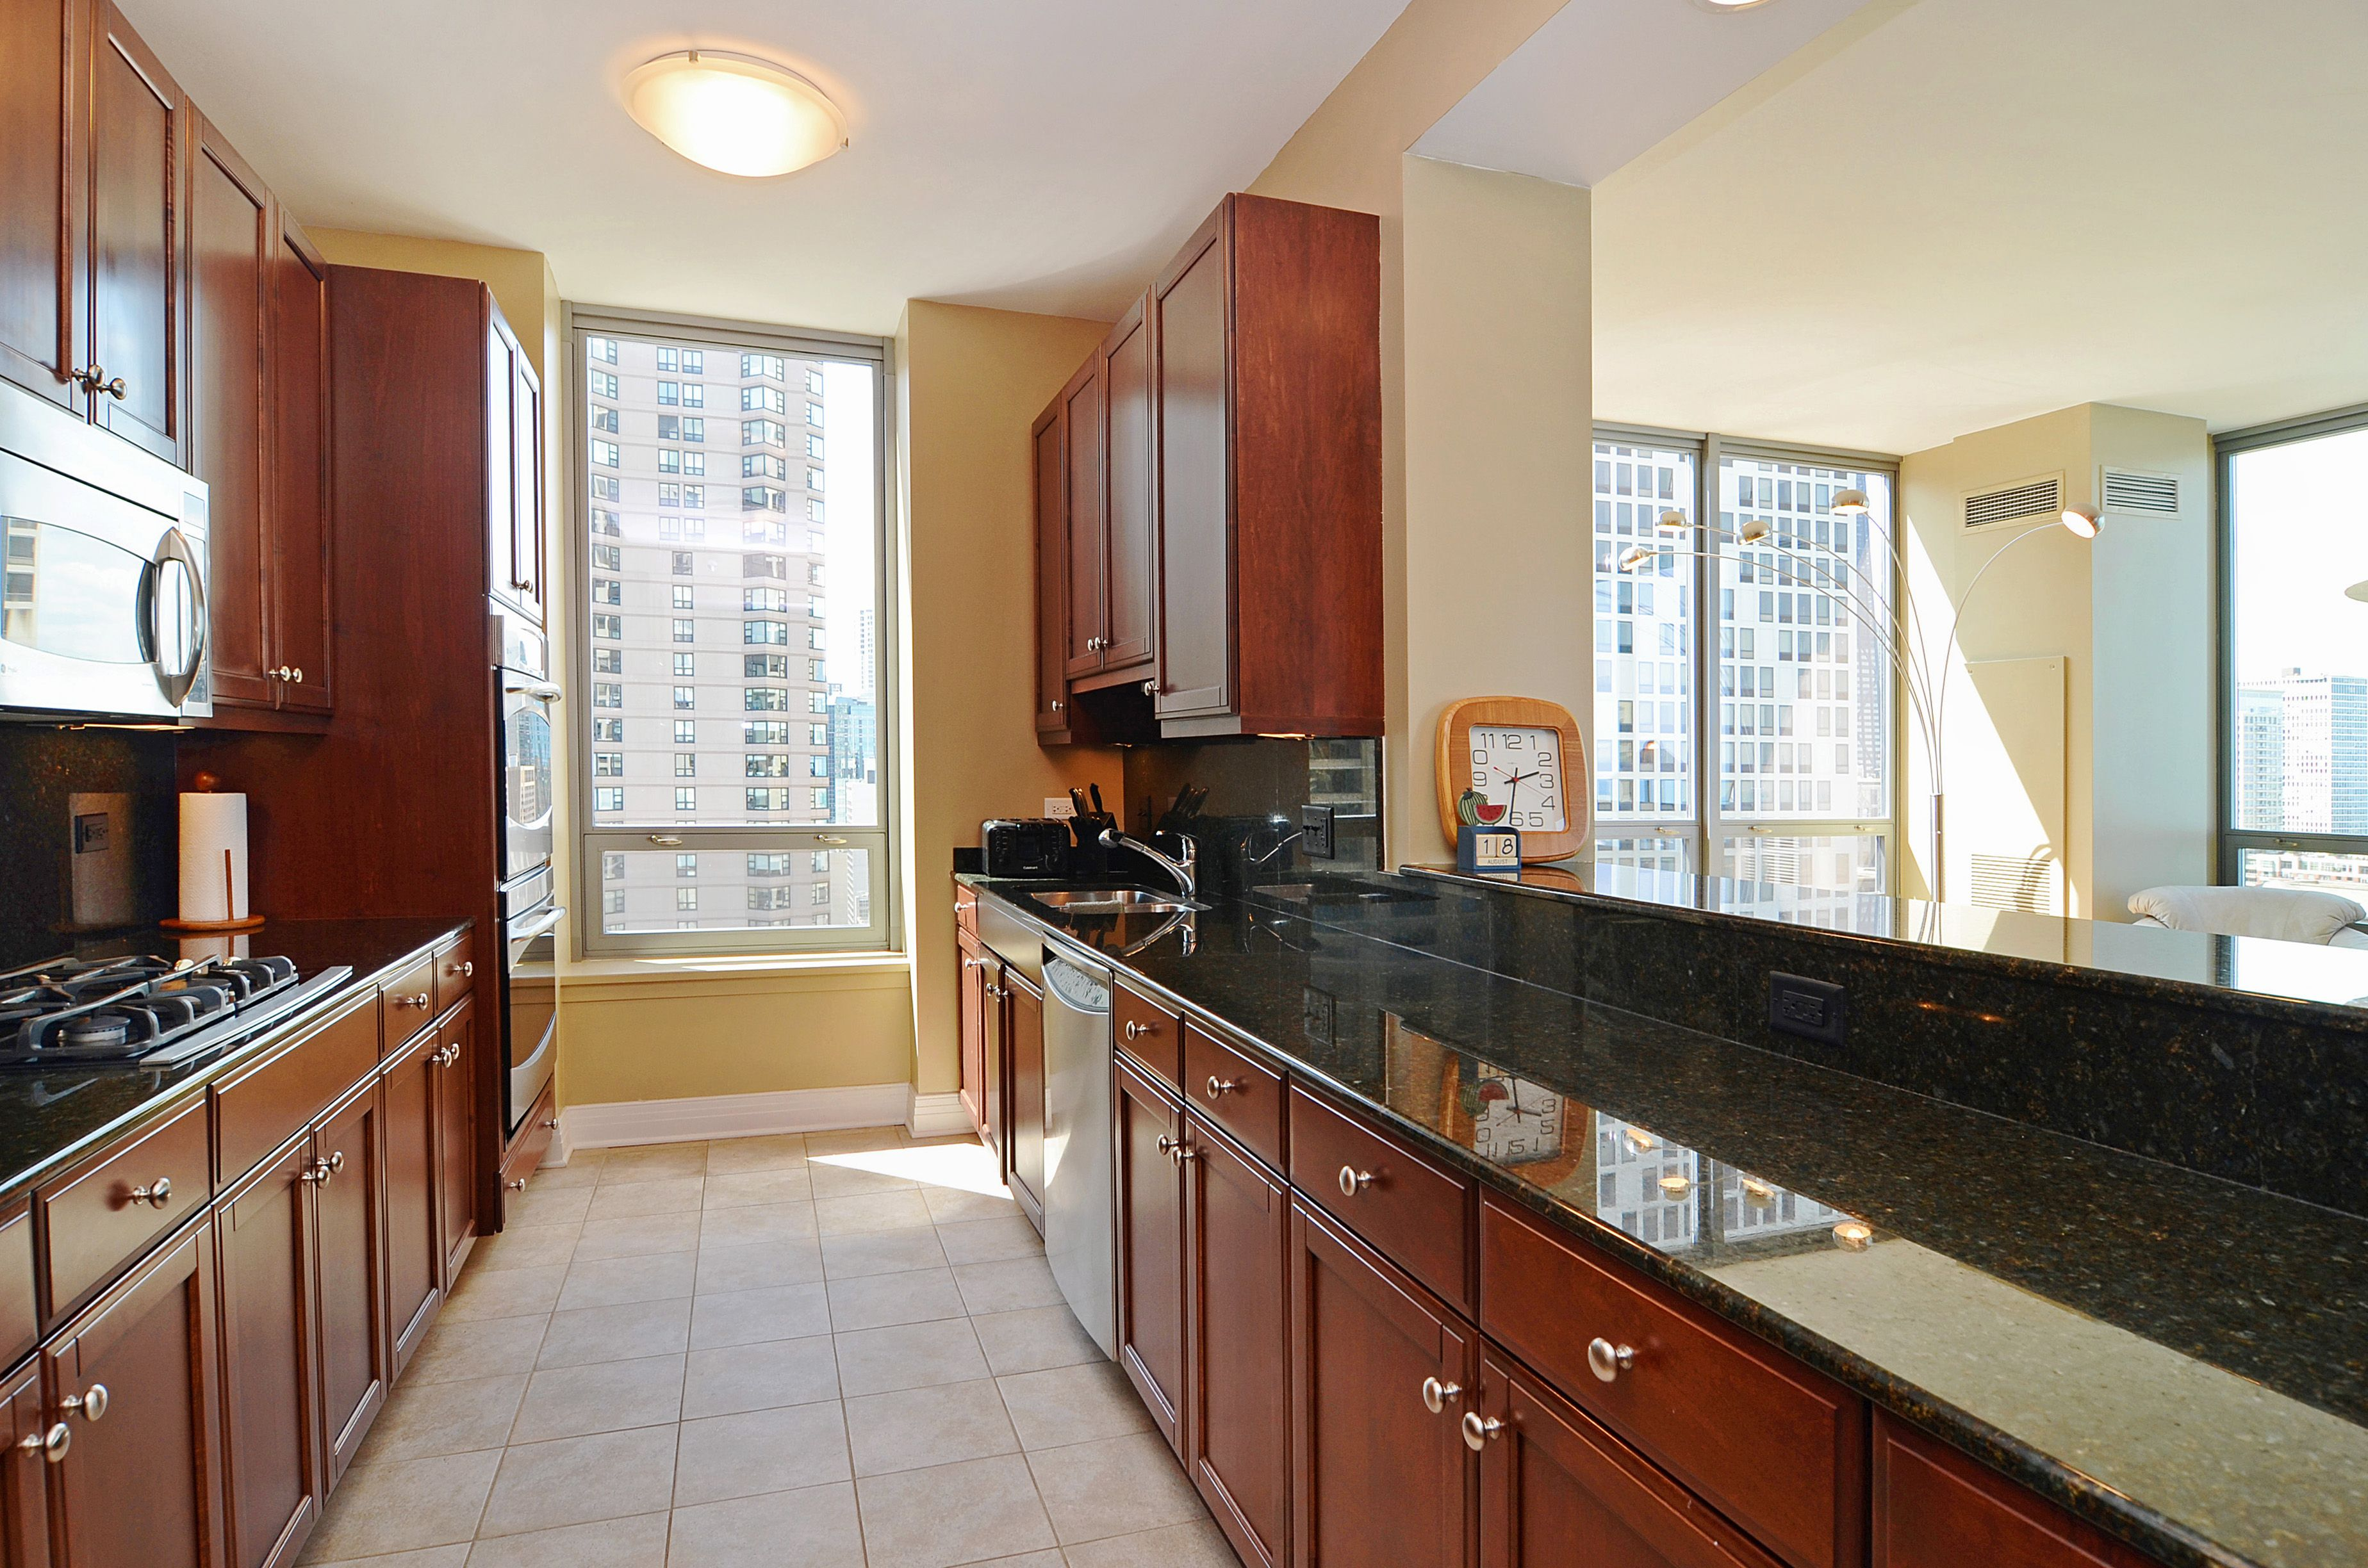 galley kitchen renovation design ideas galley kitchen remodel 17 Images About Kitchen On Plymouth Lots Of Windows